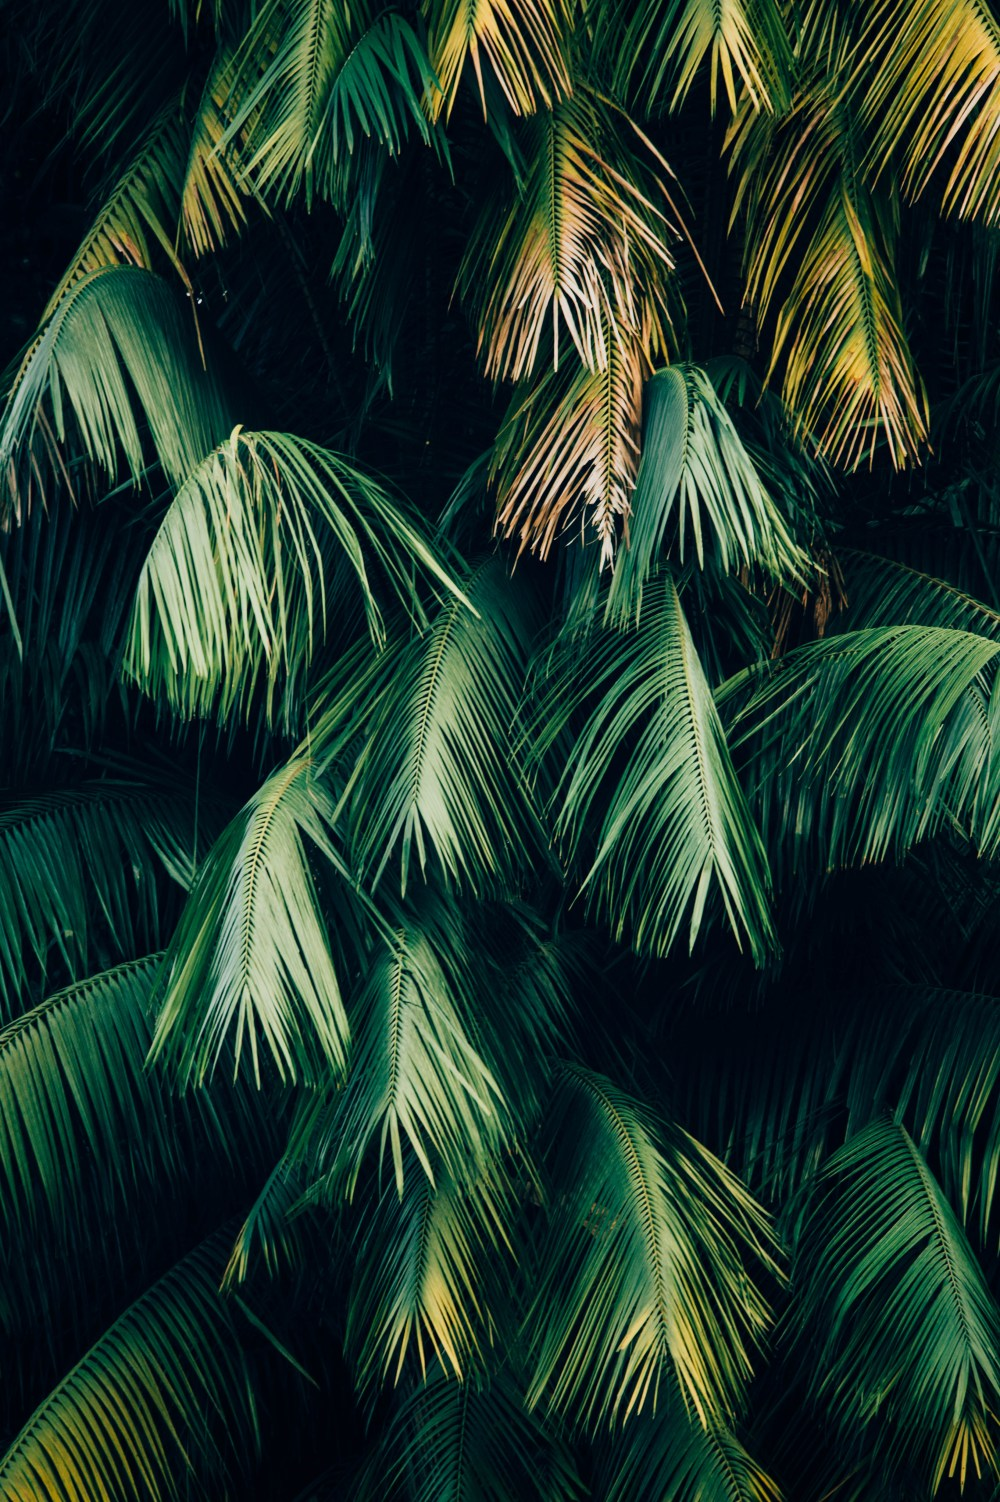 Download Android Wallpapers | Unsplash